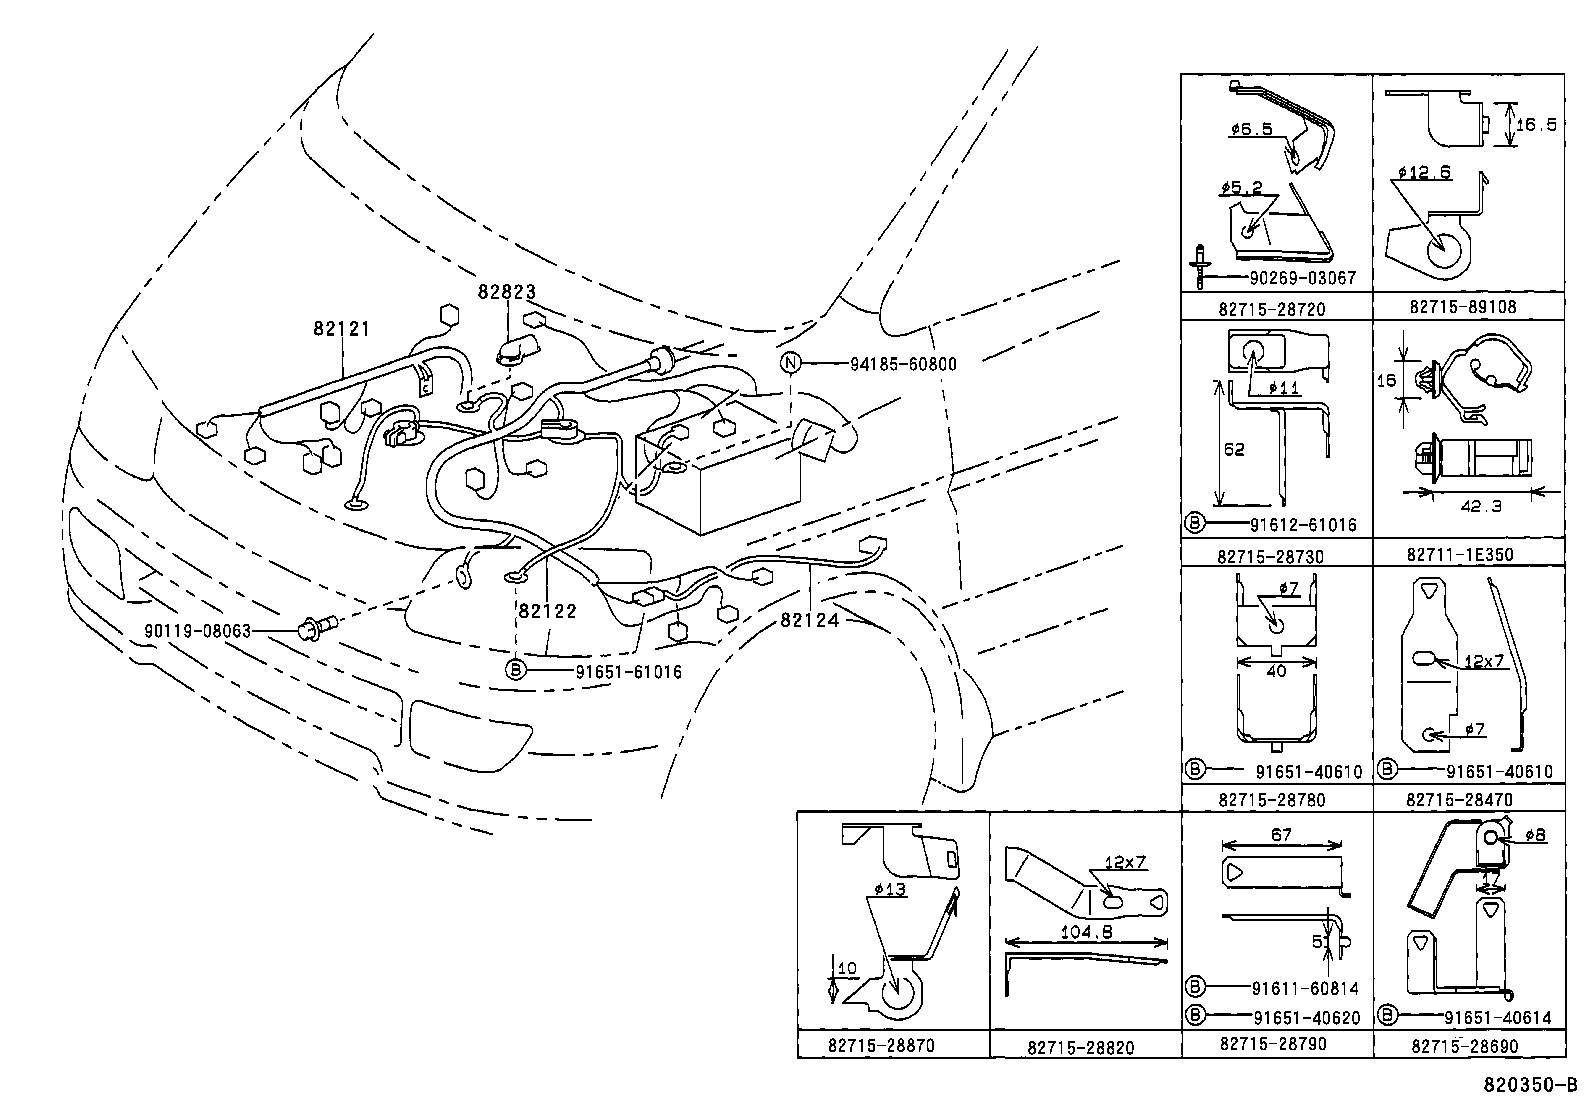 Toyota Cr 41 Van Wiring Diagram Yzf 450 Image Not Found Or Type Unknown